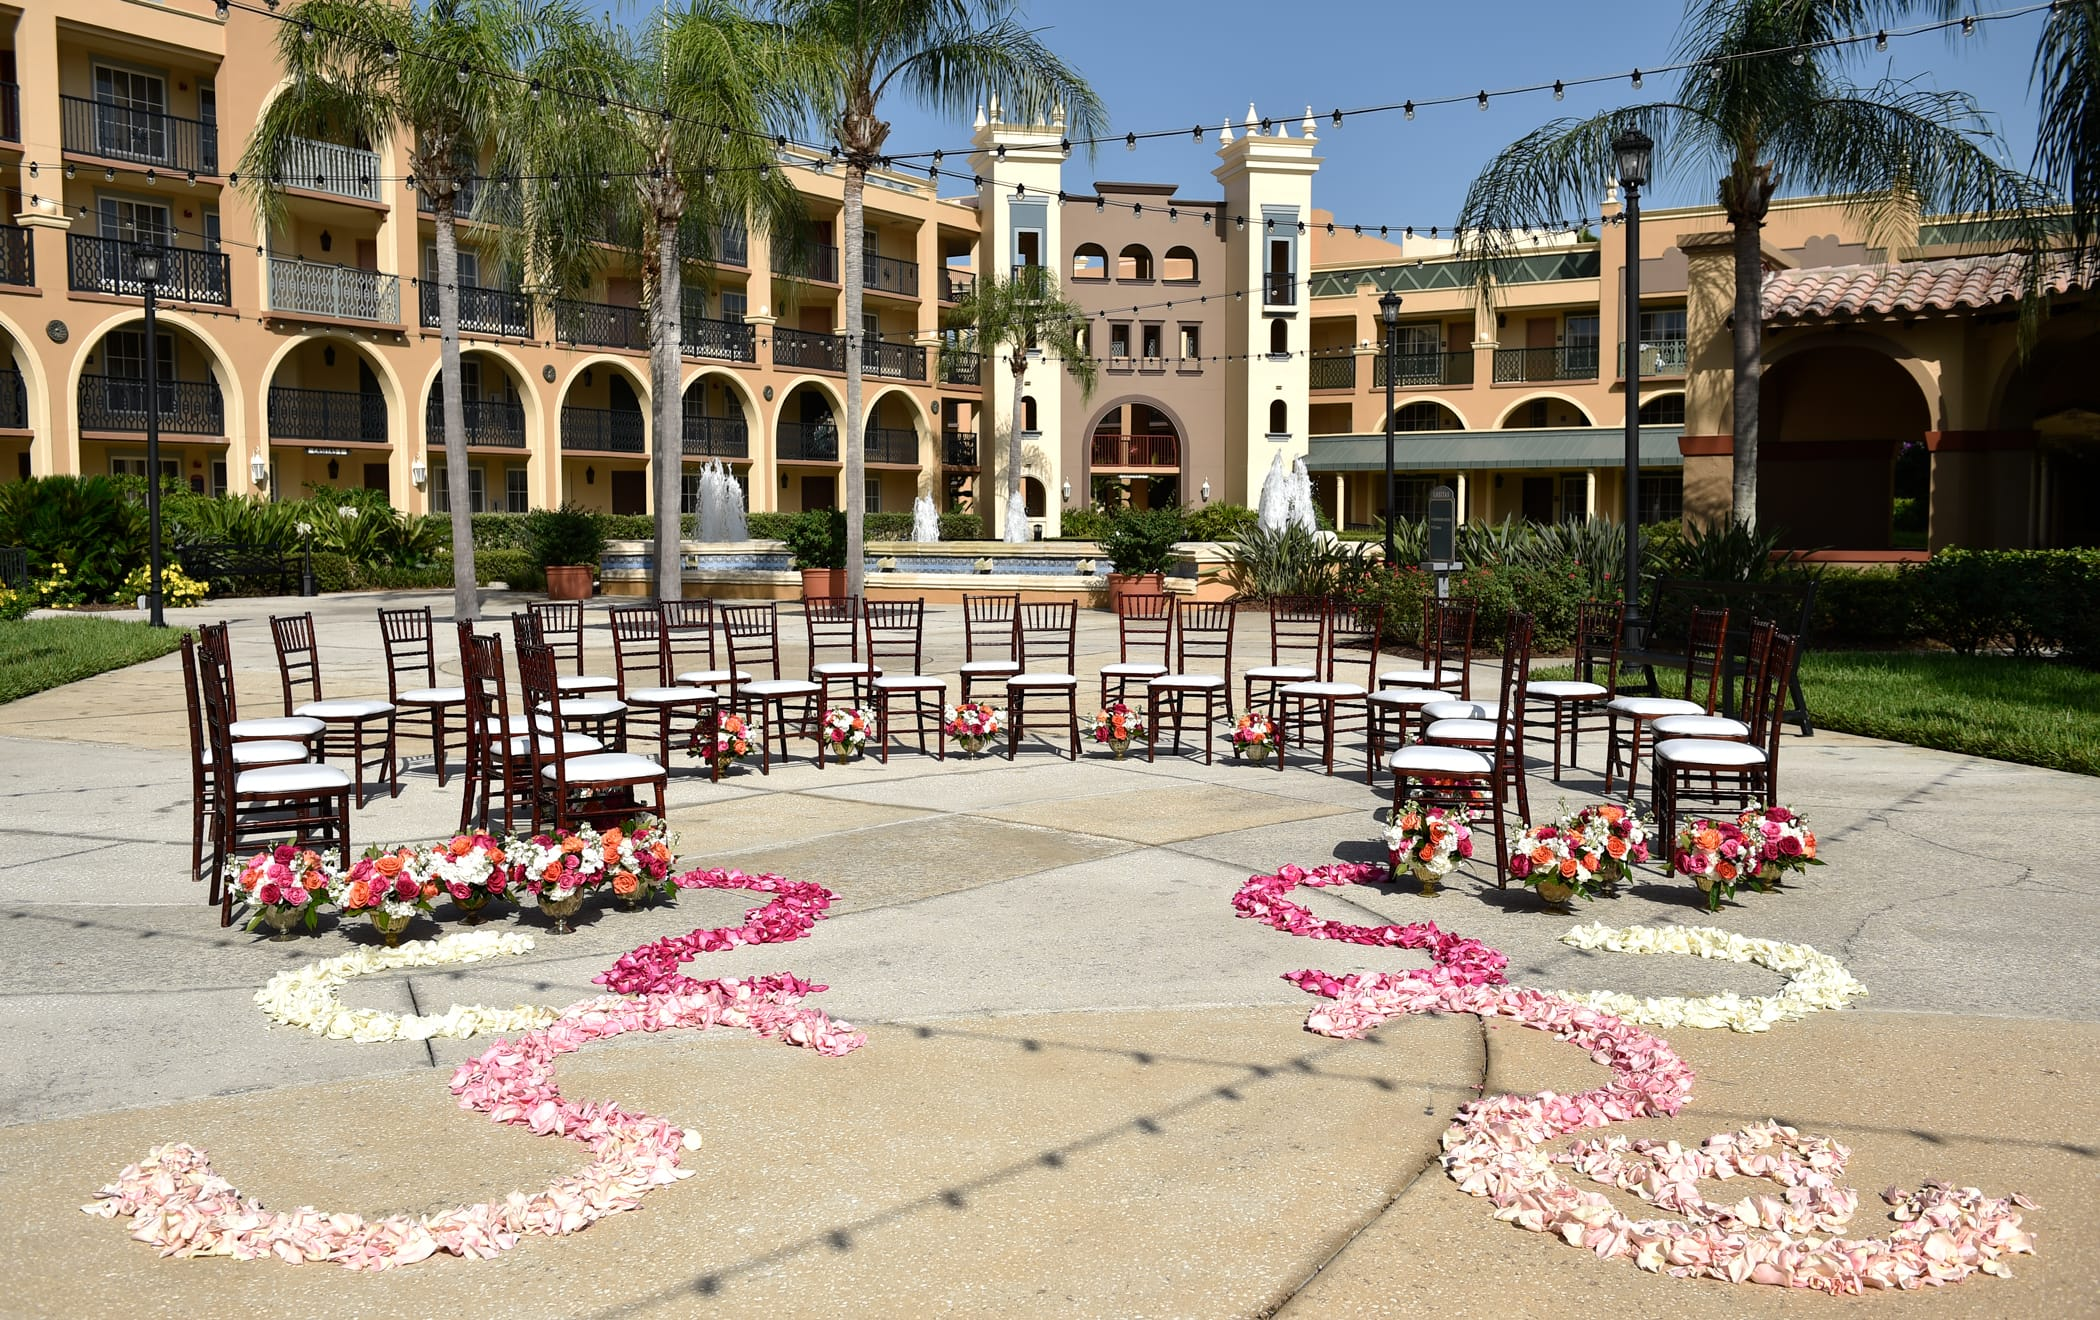 Rose petals lead to a group of chairs arranged in a semi-circle on a courtyard with a large water fountain